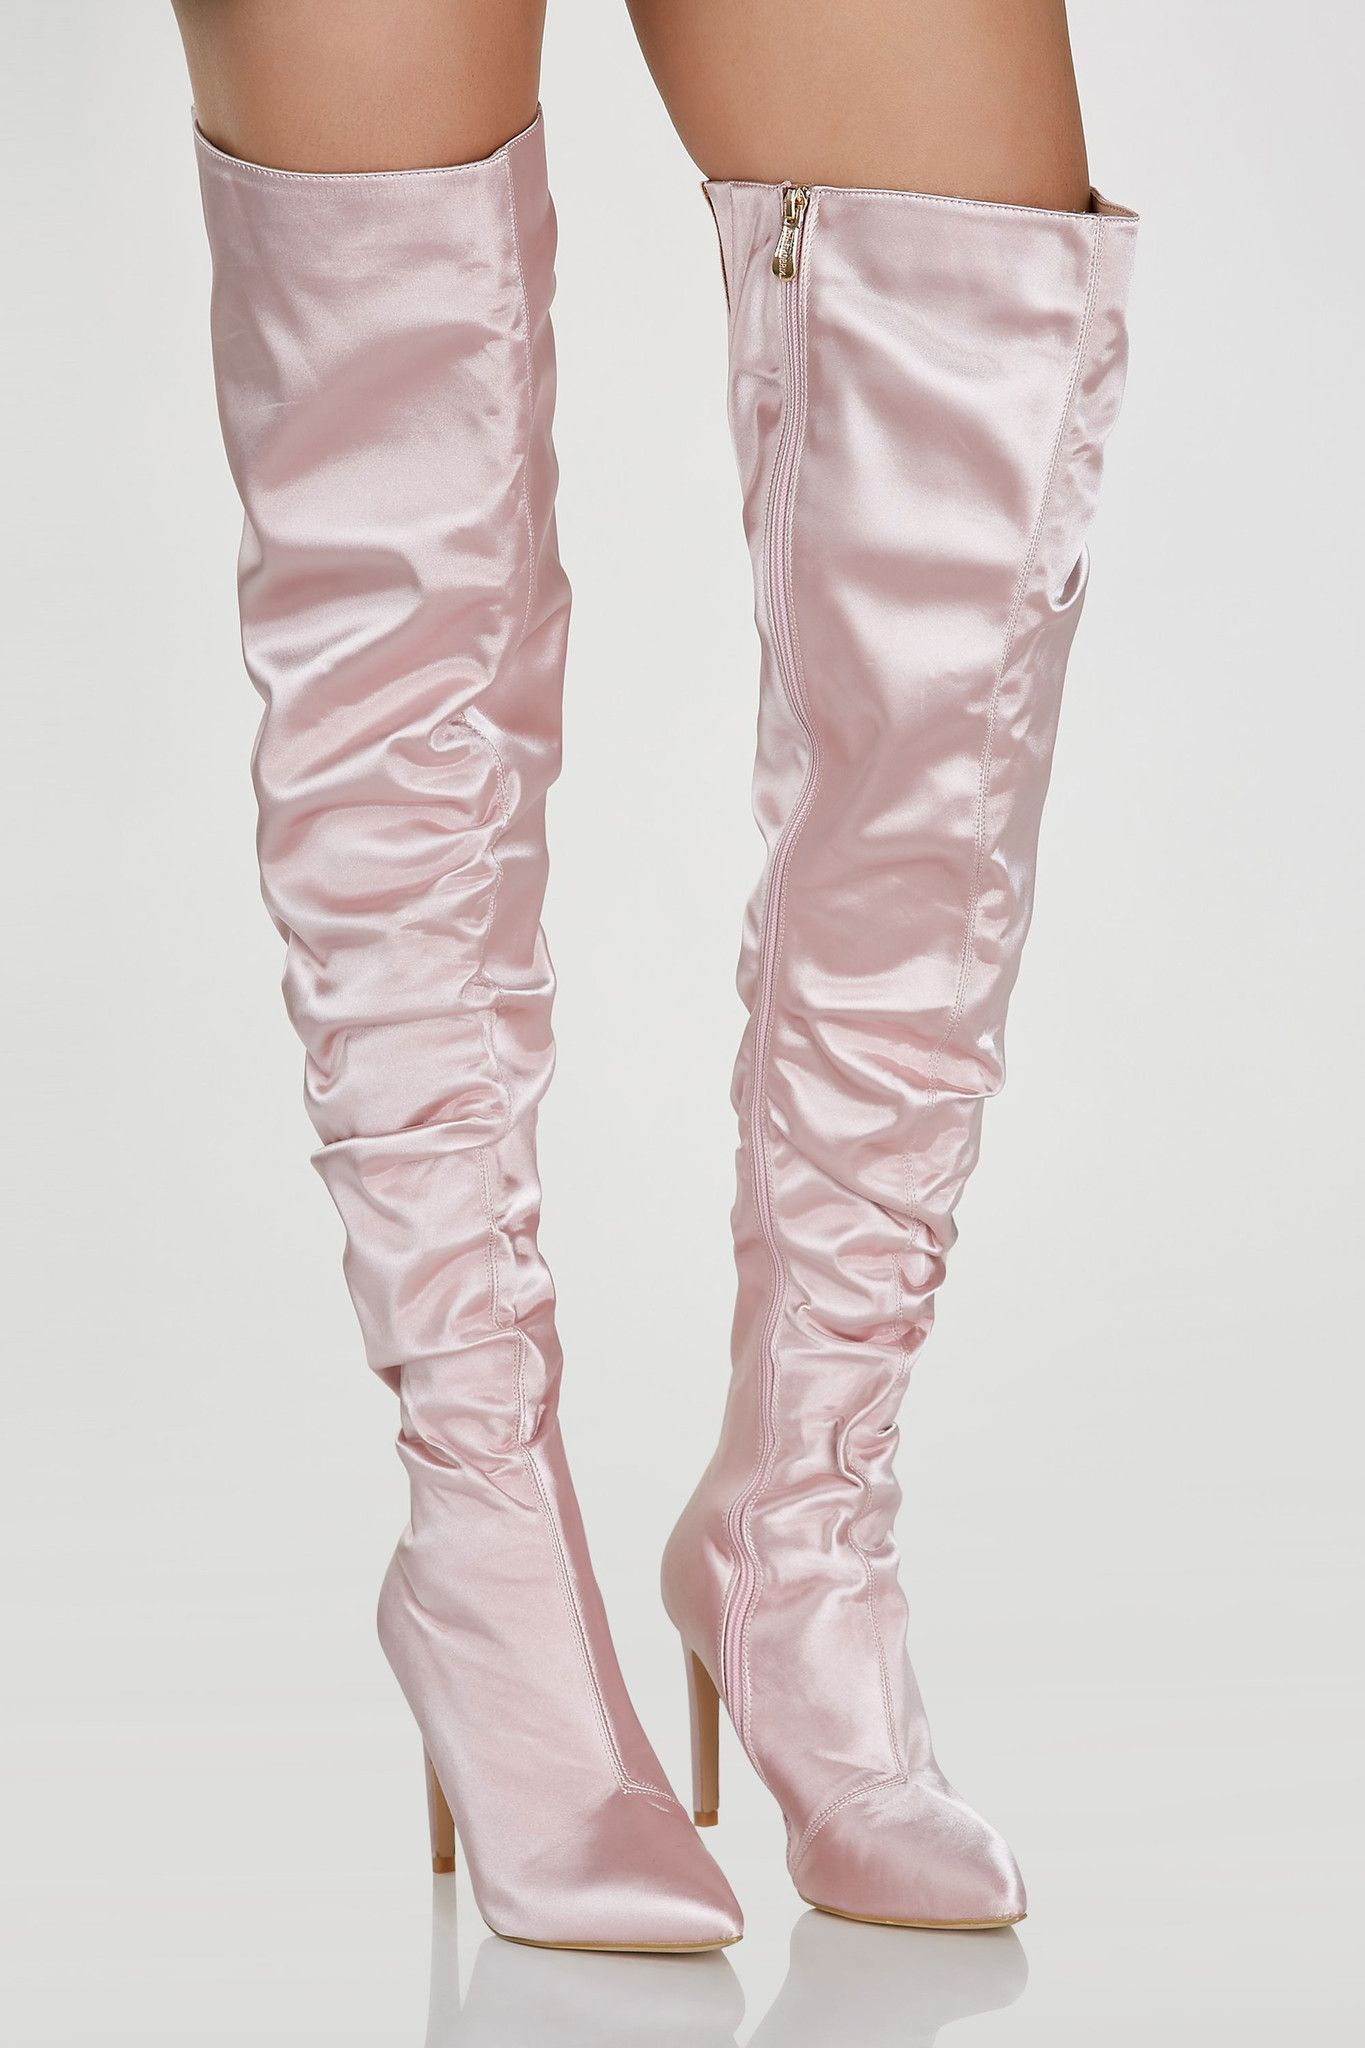 77762f6804c0 Smooth satin thigh high boots with stiletto heels. Slight ruched effect  with side zip closure and pointed toe finish. - Man made materials -  Imported ...